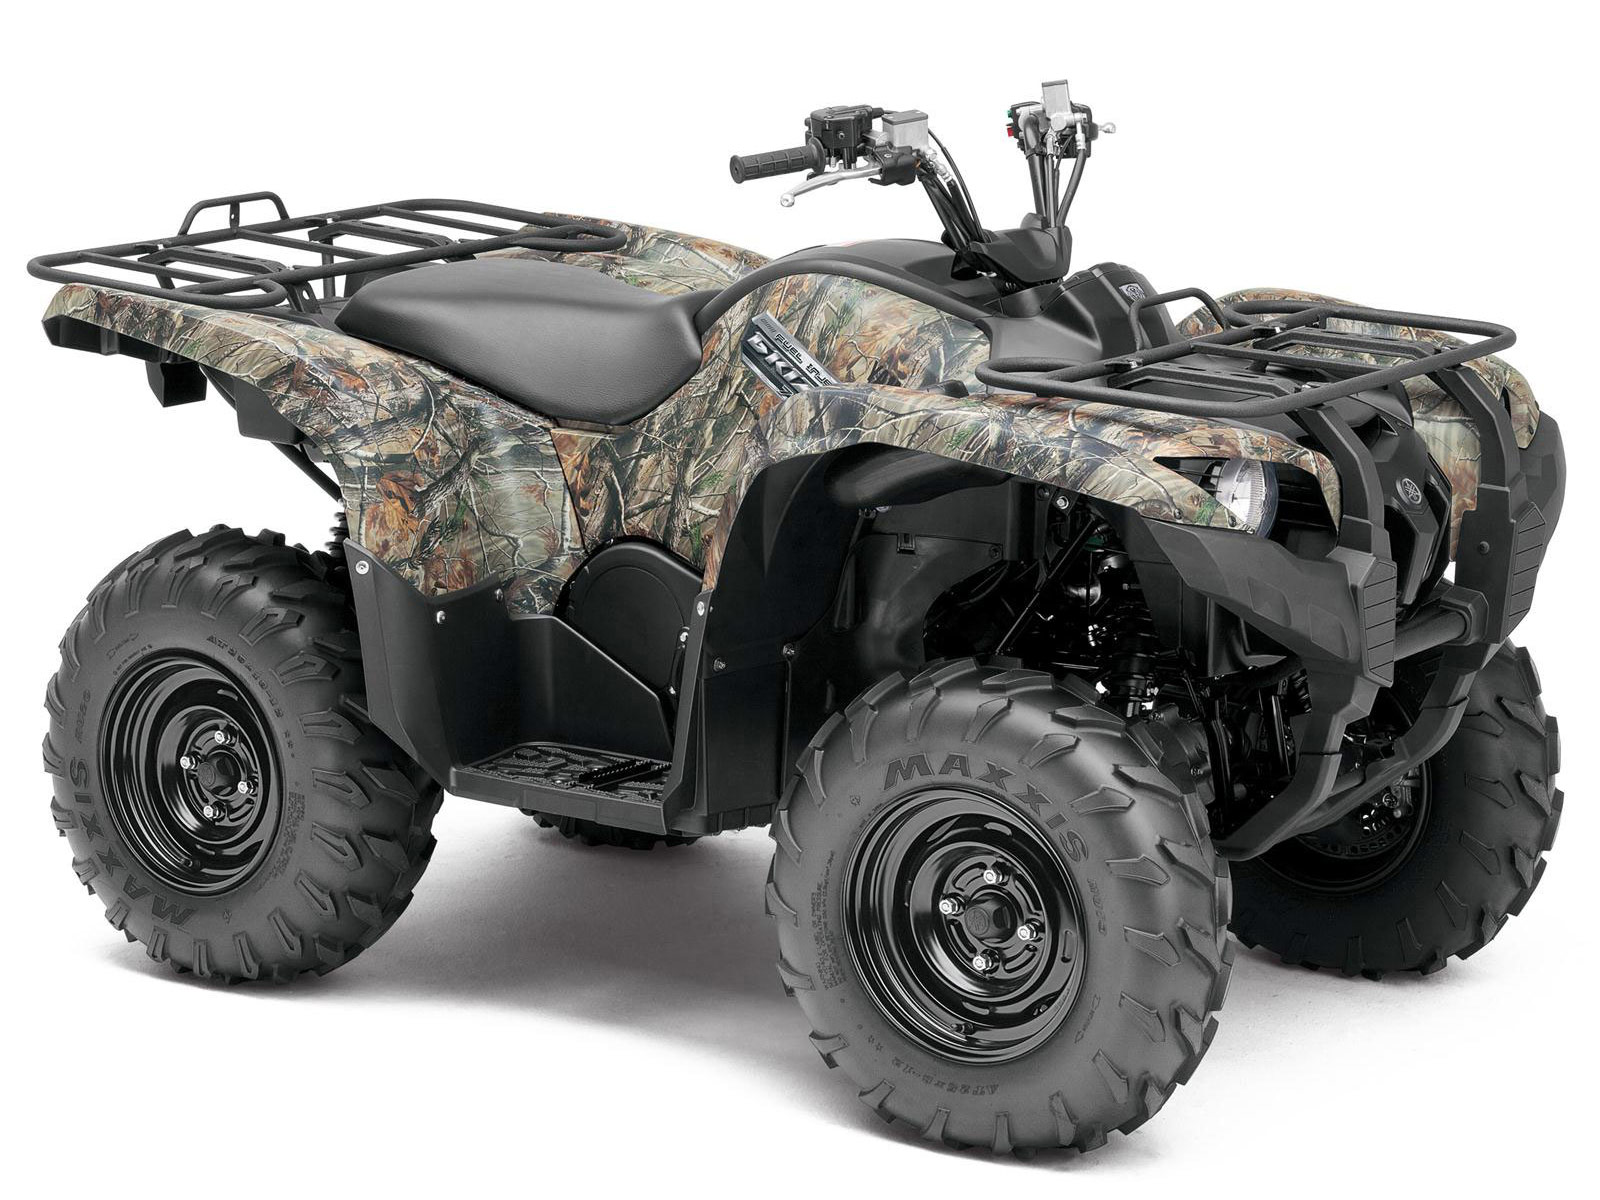 2013 grizzly 700 fi auto 4x4 yamaha atv pictures specs. Black Bedroom Furniture Sets. Home Design Ideas